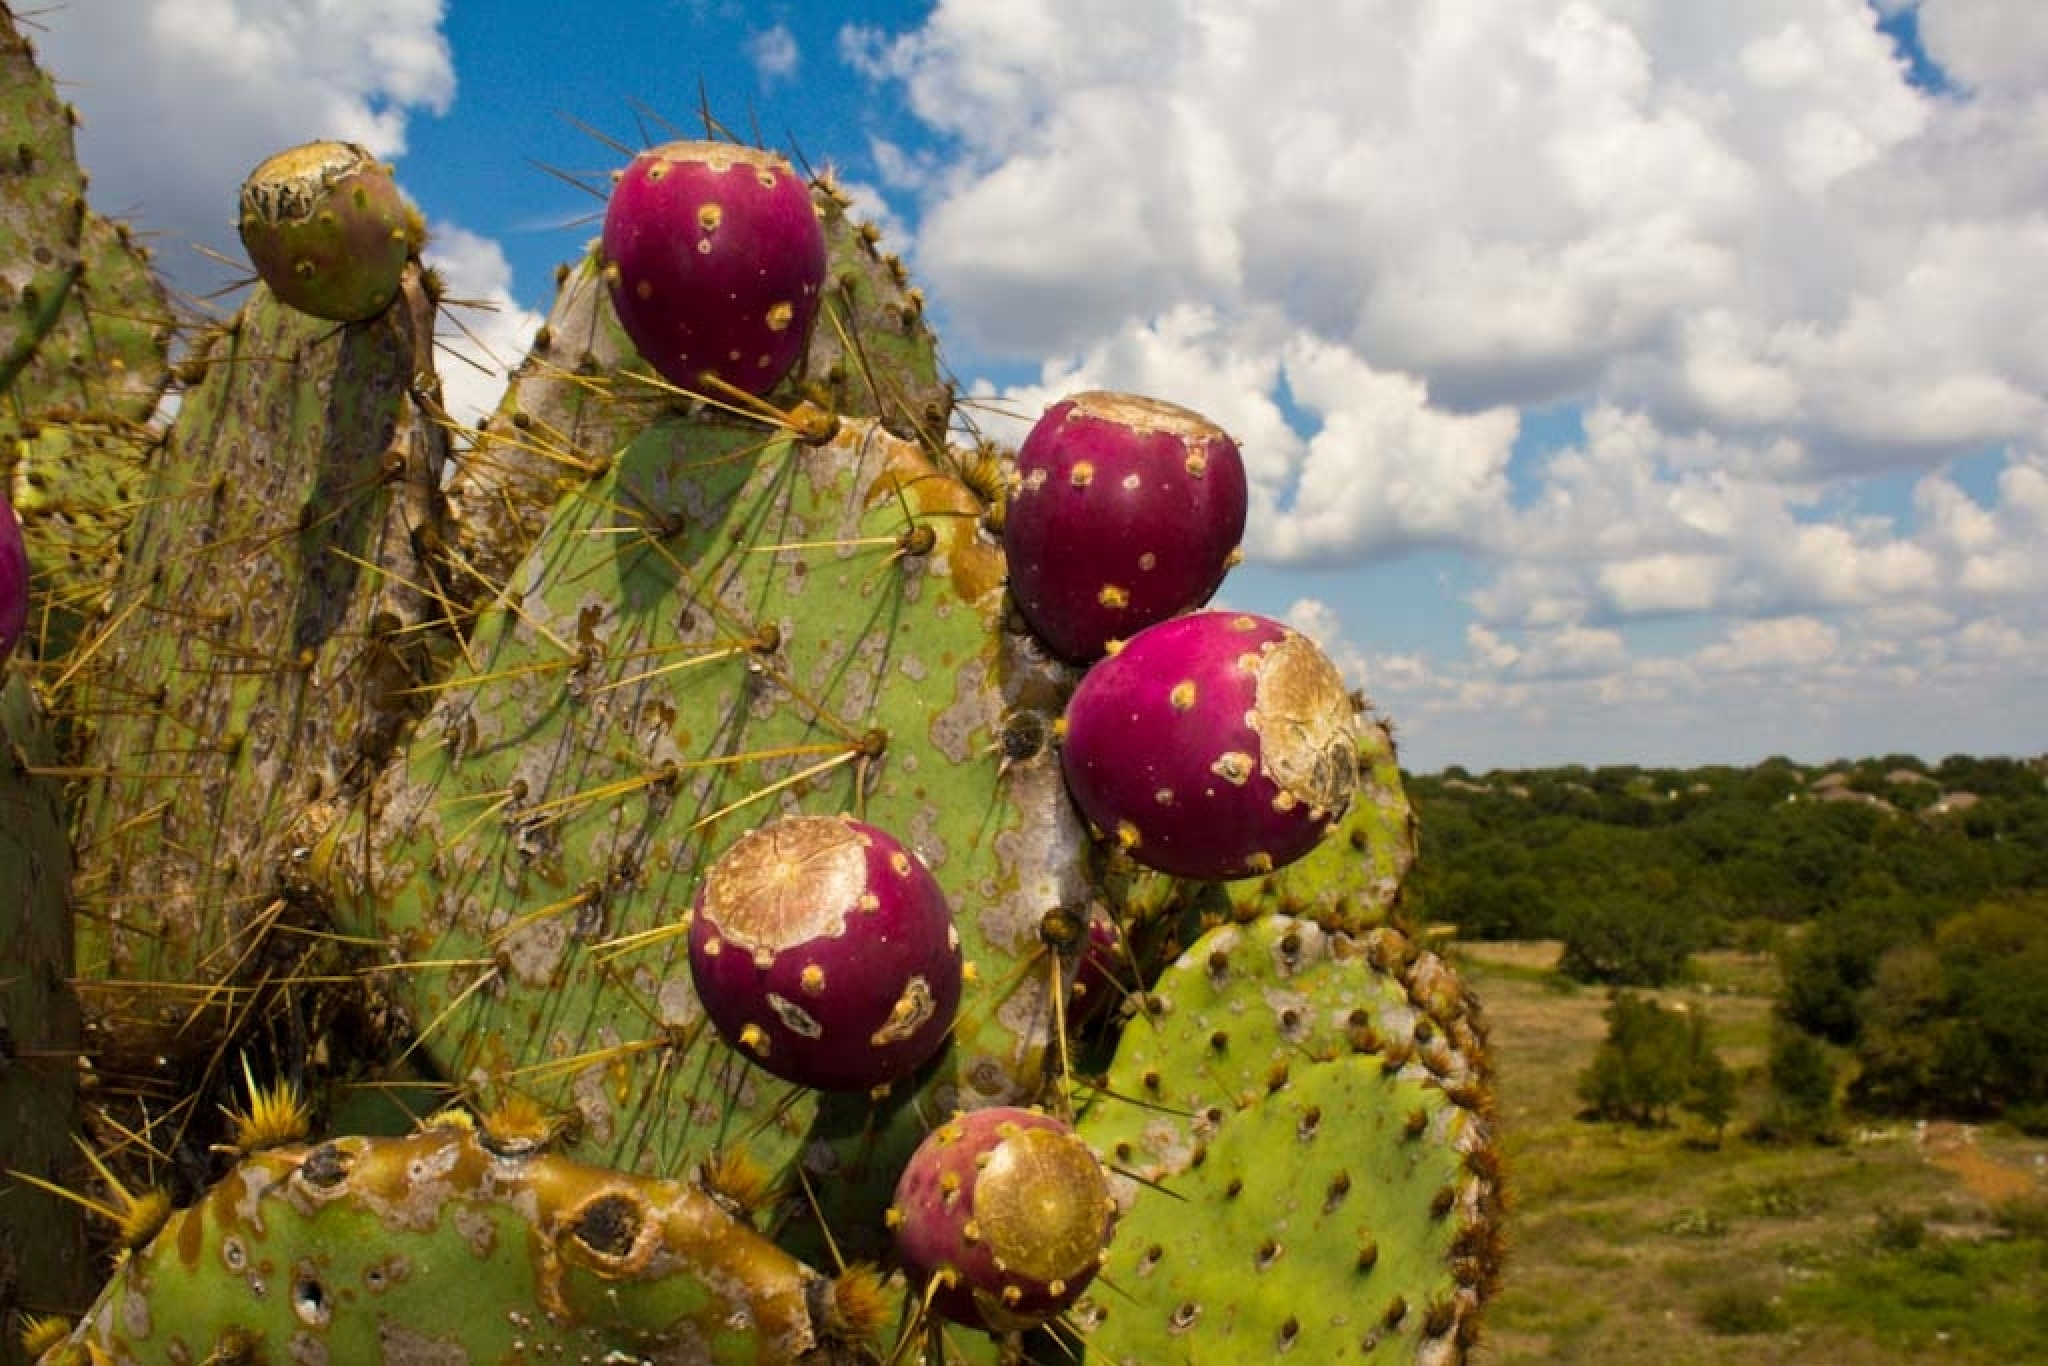 Prickly Pear Cactus by Michael Hines